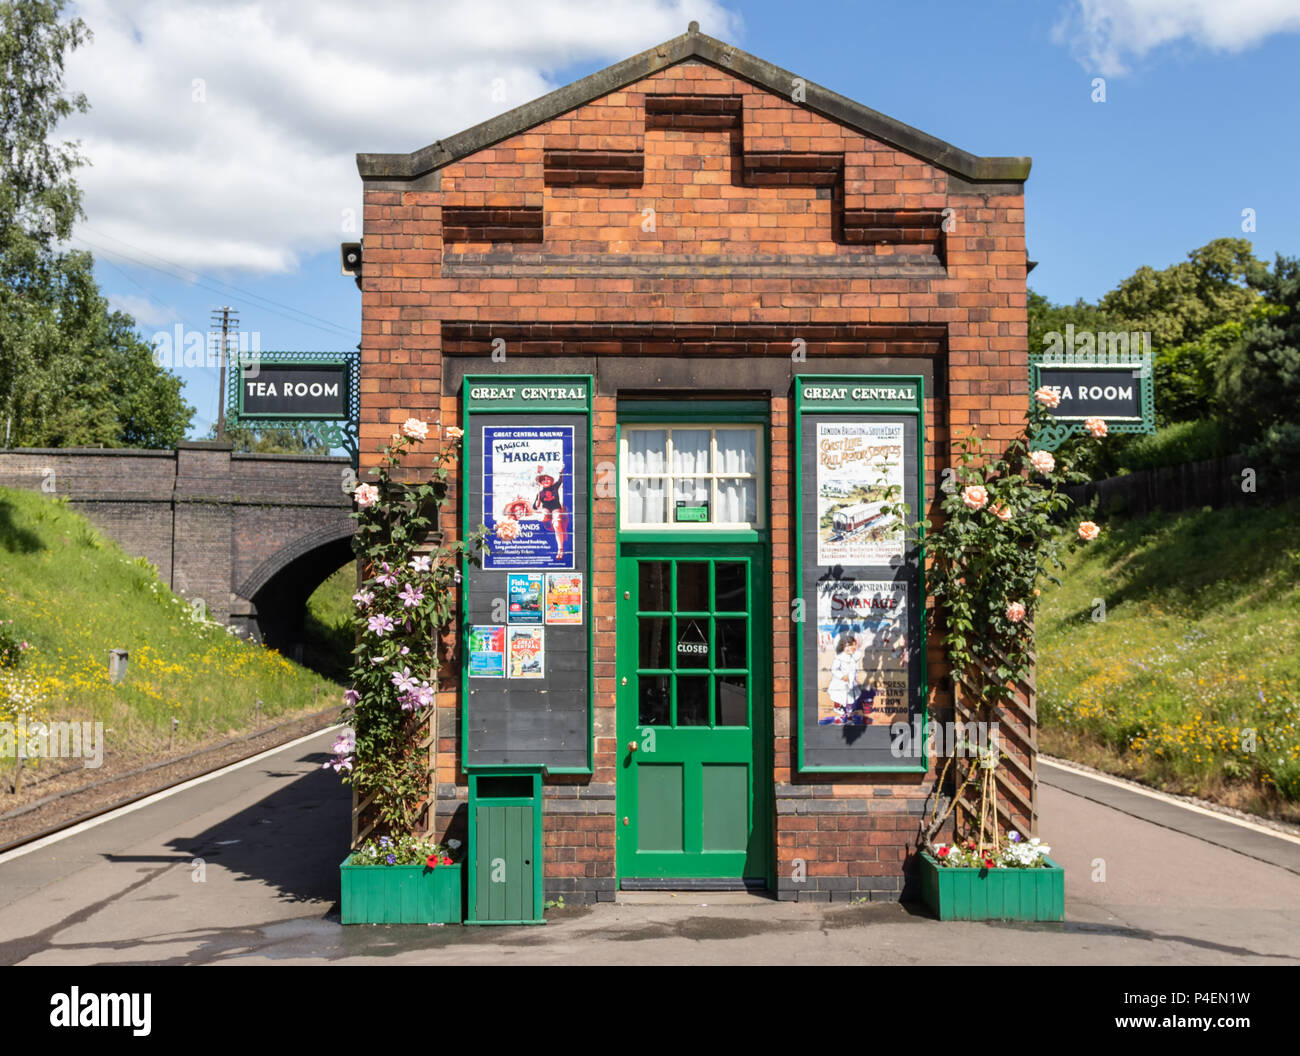 The Tea Room At The Great Central Railway At Rothley Station In Leicestershire - Stock Image